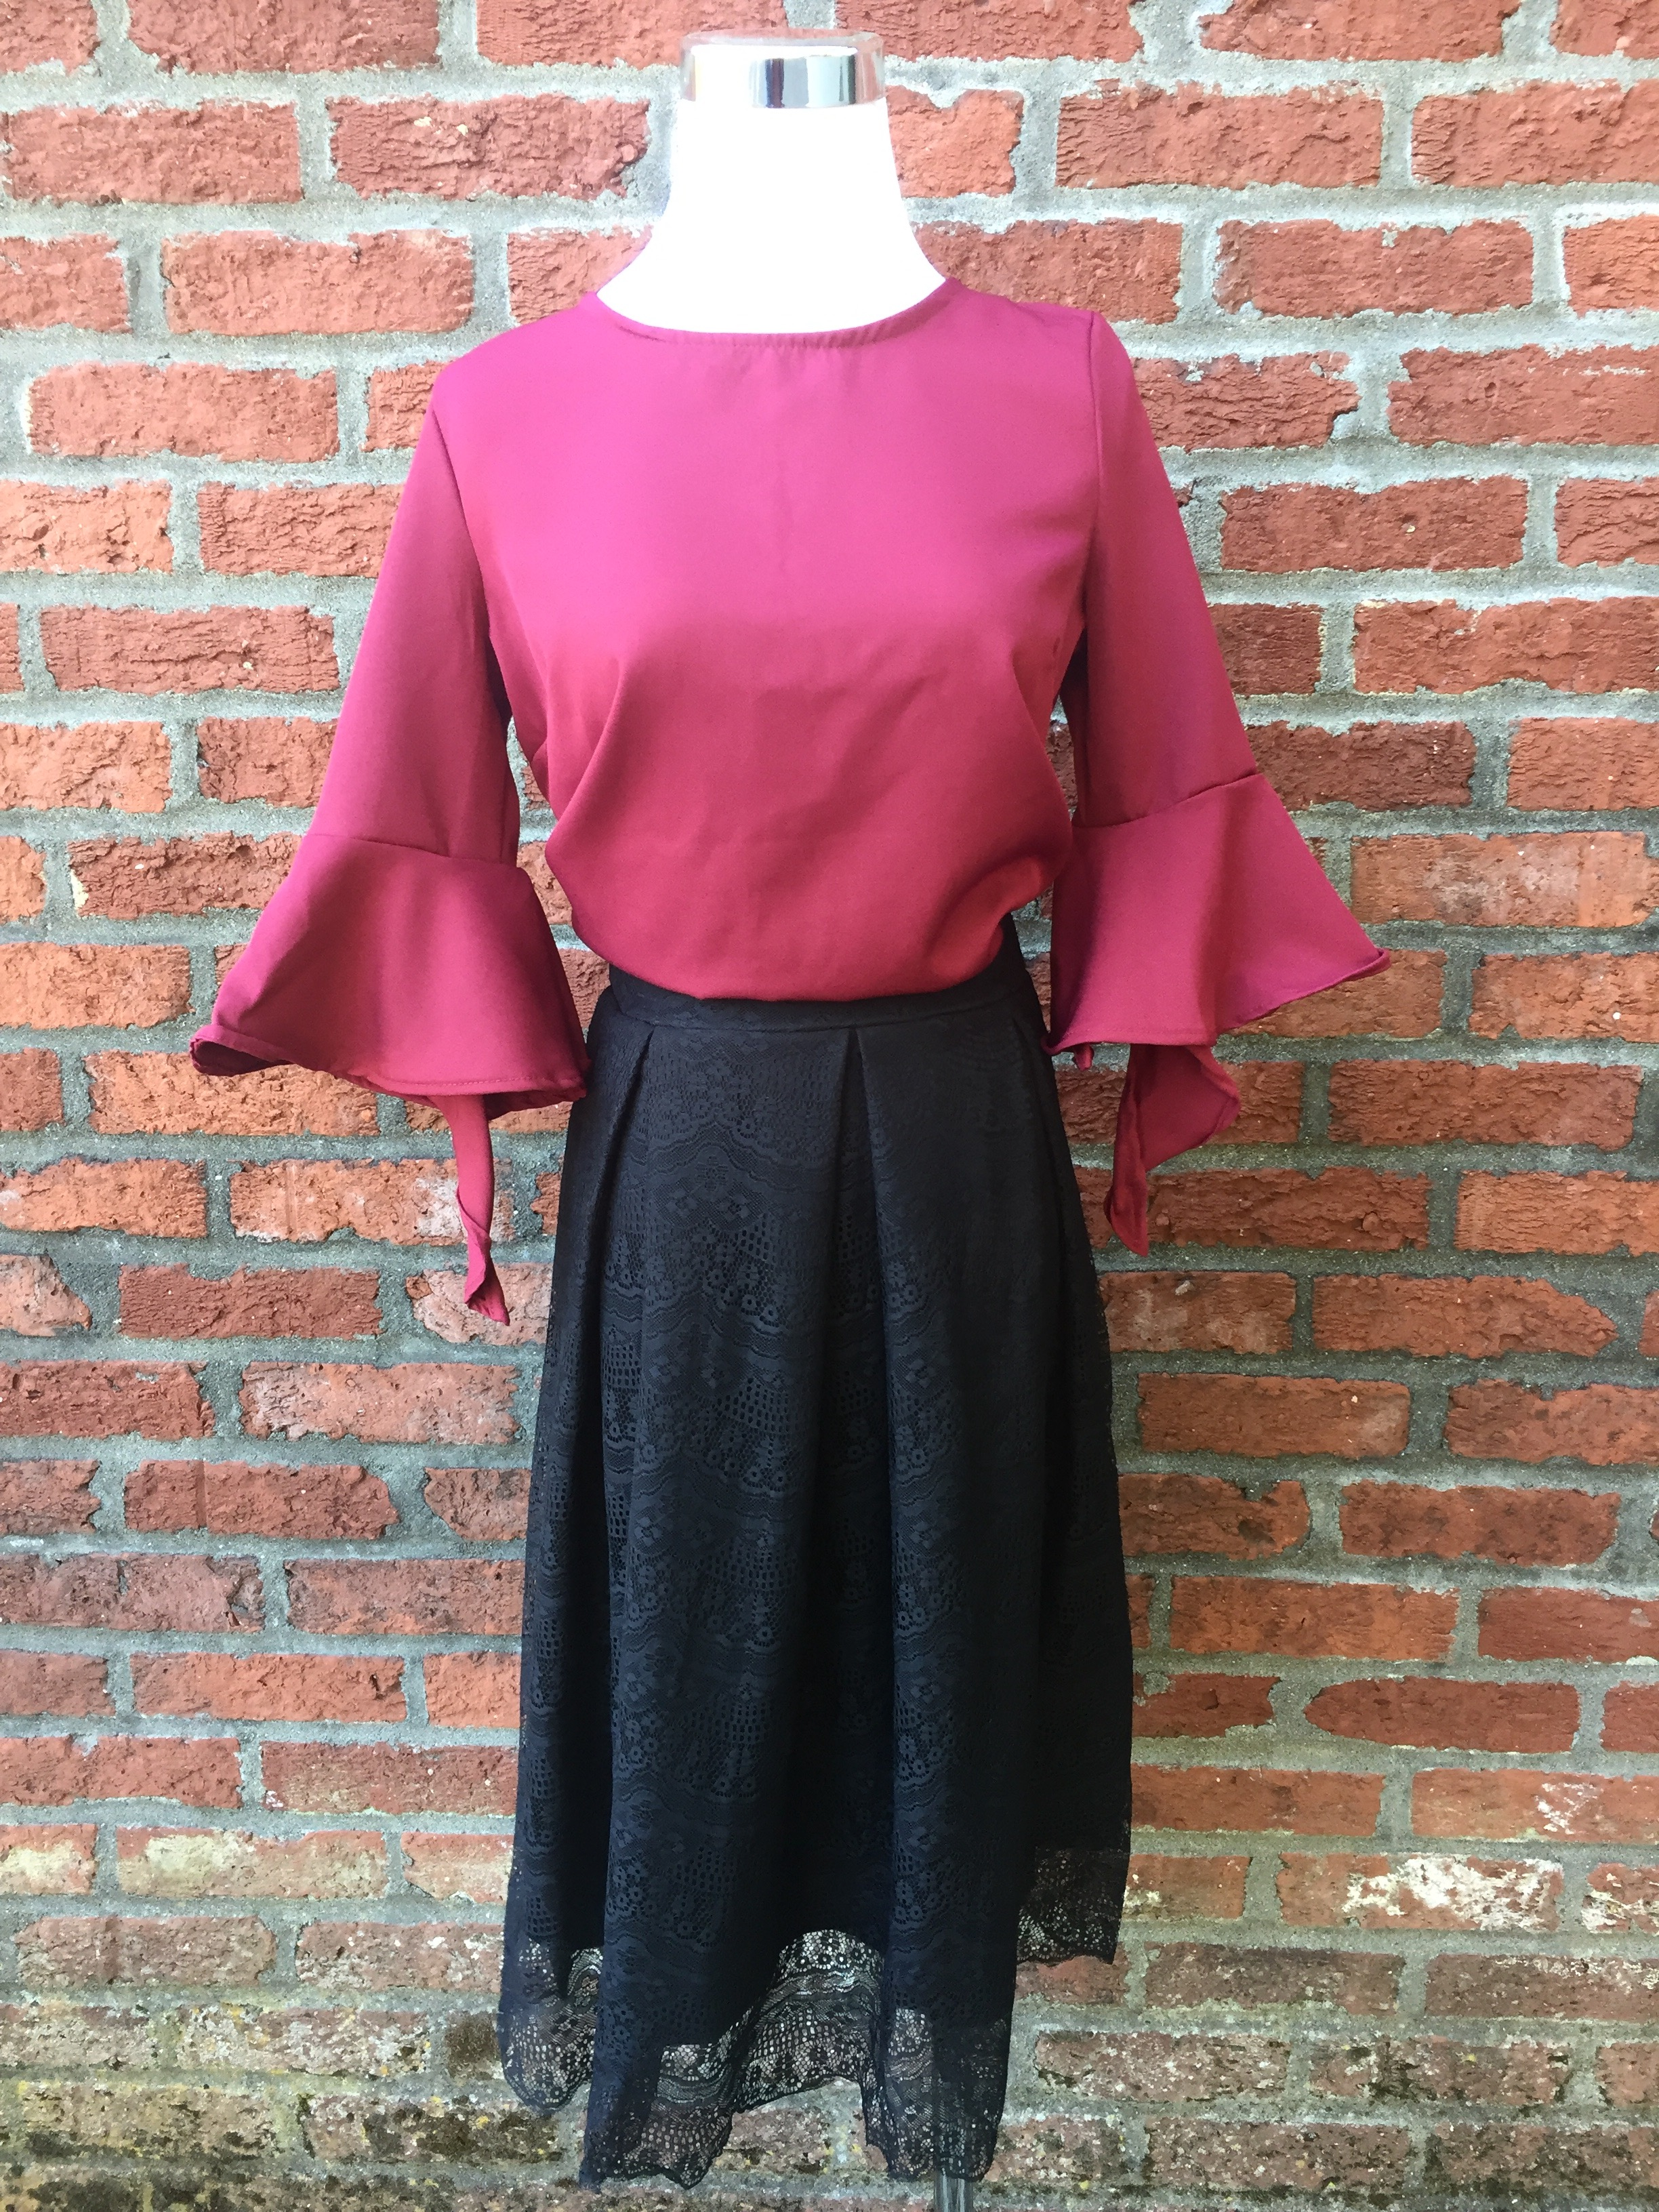 Bell Sleeve Blouse ($32) w/ Black Lace Skirt ($35)